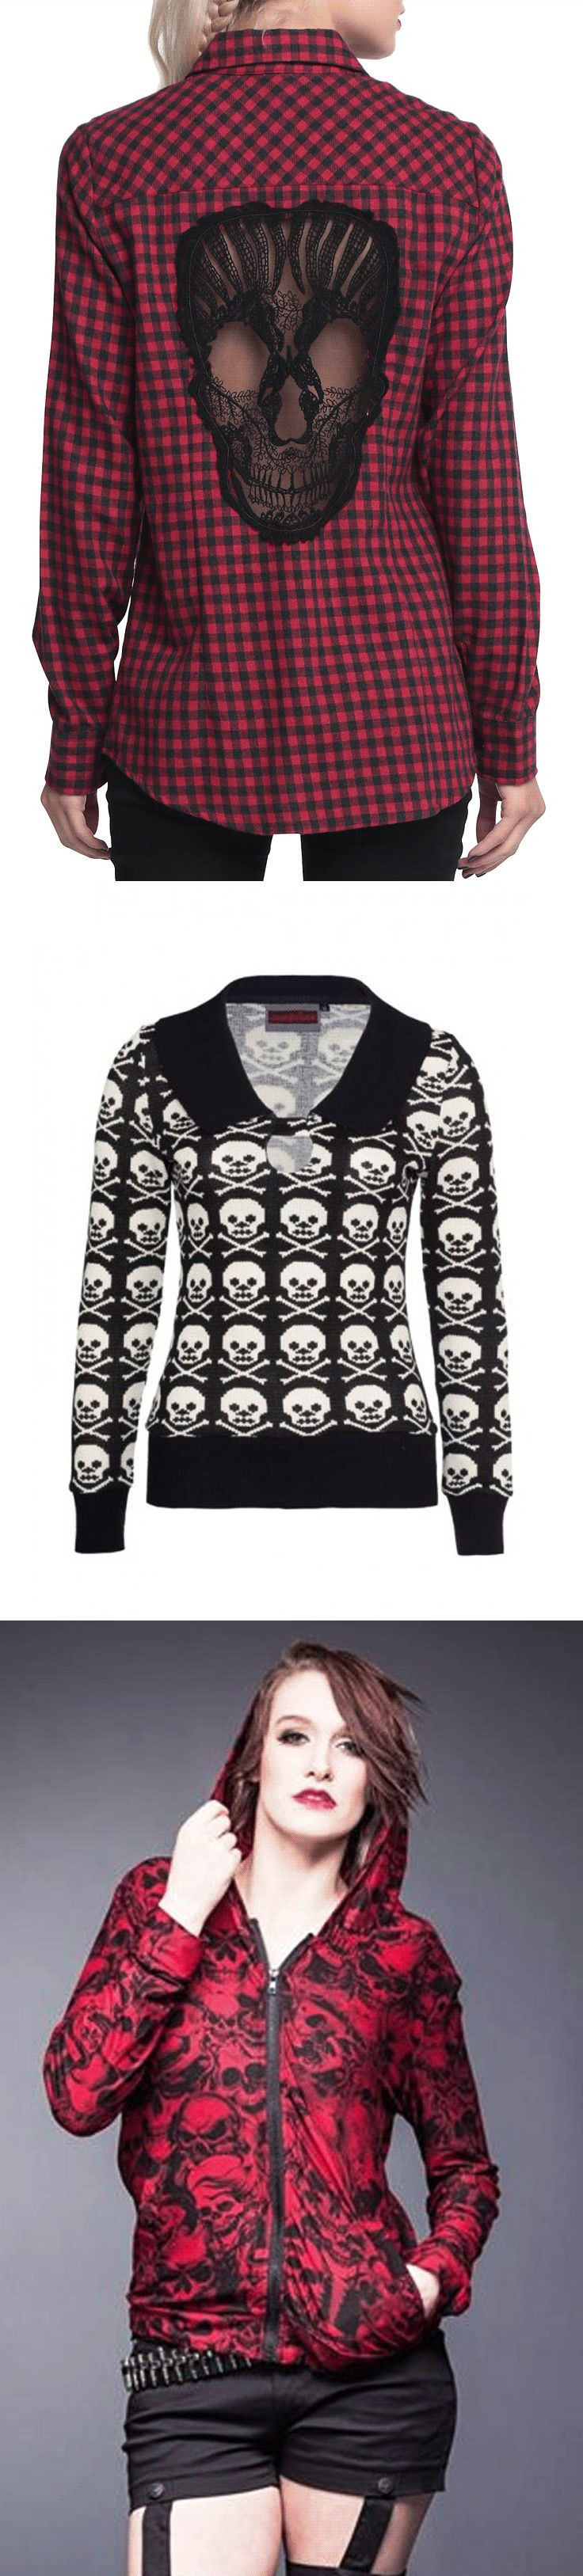 Get ready for fall with skull fashion at RebelsMarket.